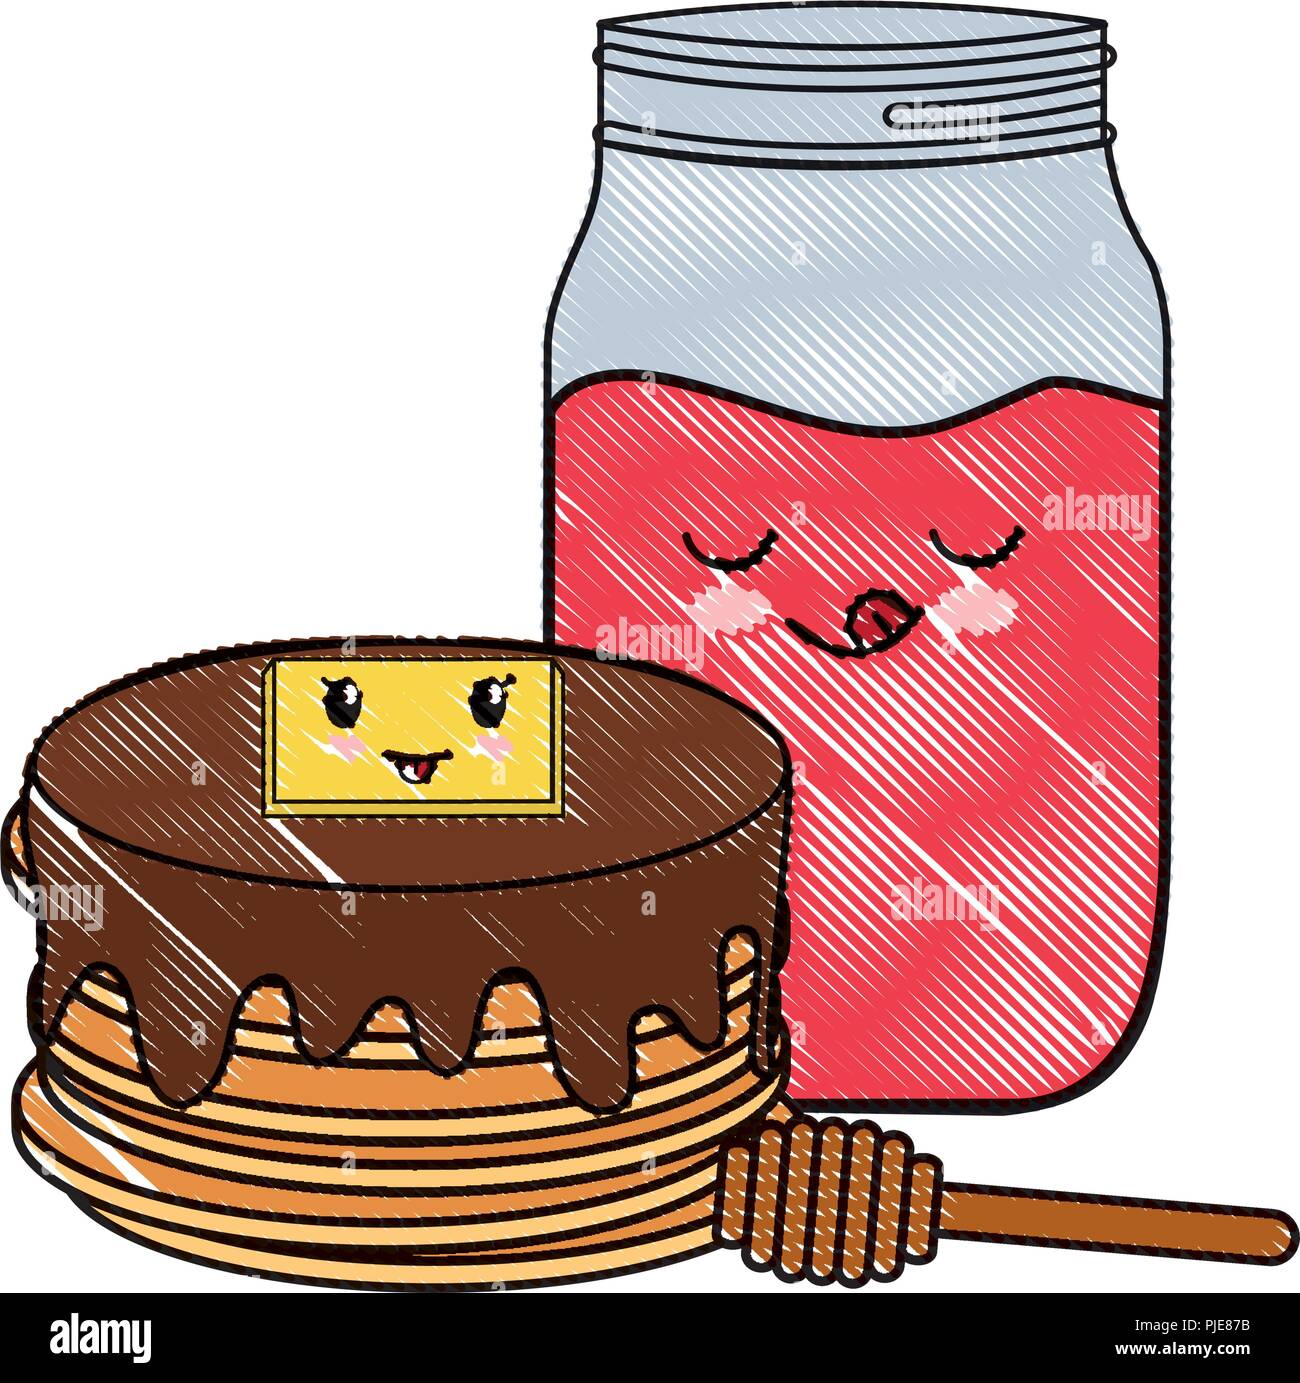 kawaii pancakes and marmalade bottle over white background, vector illustration - Stock Image